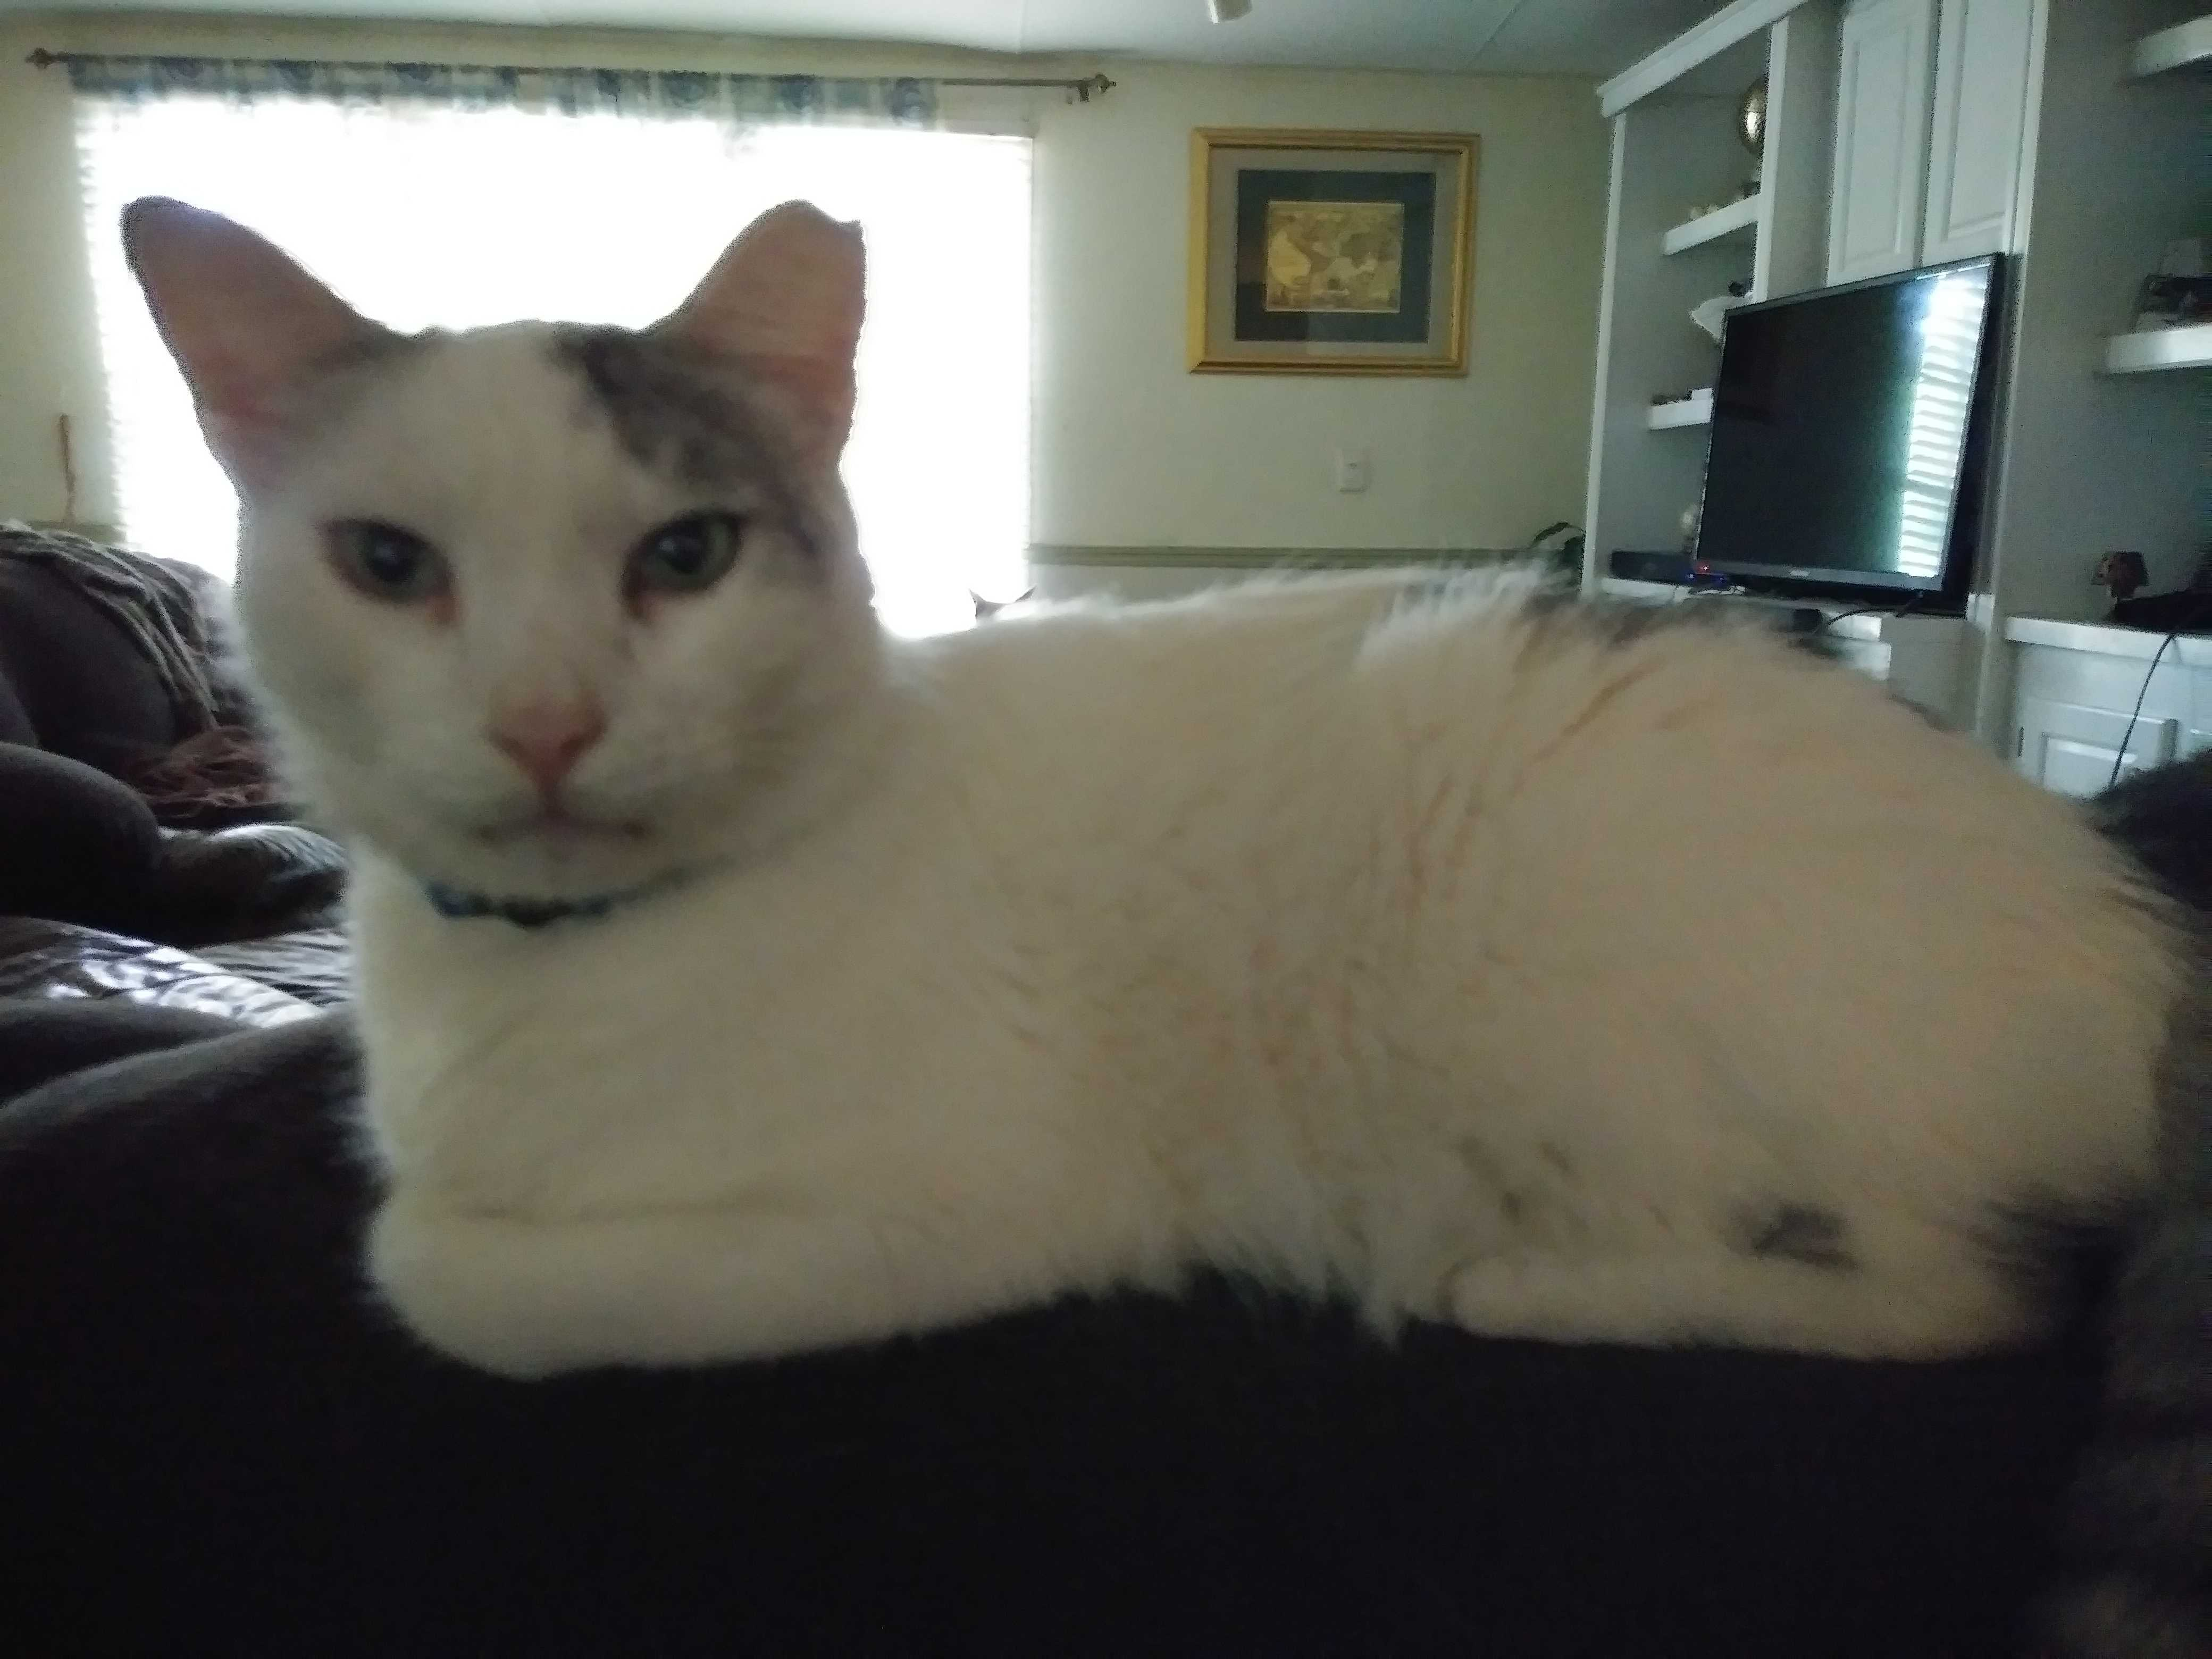 white cat sitting on top of a couch in a living room